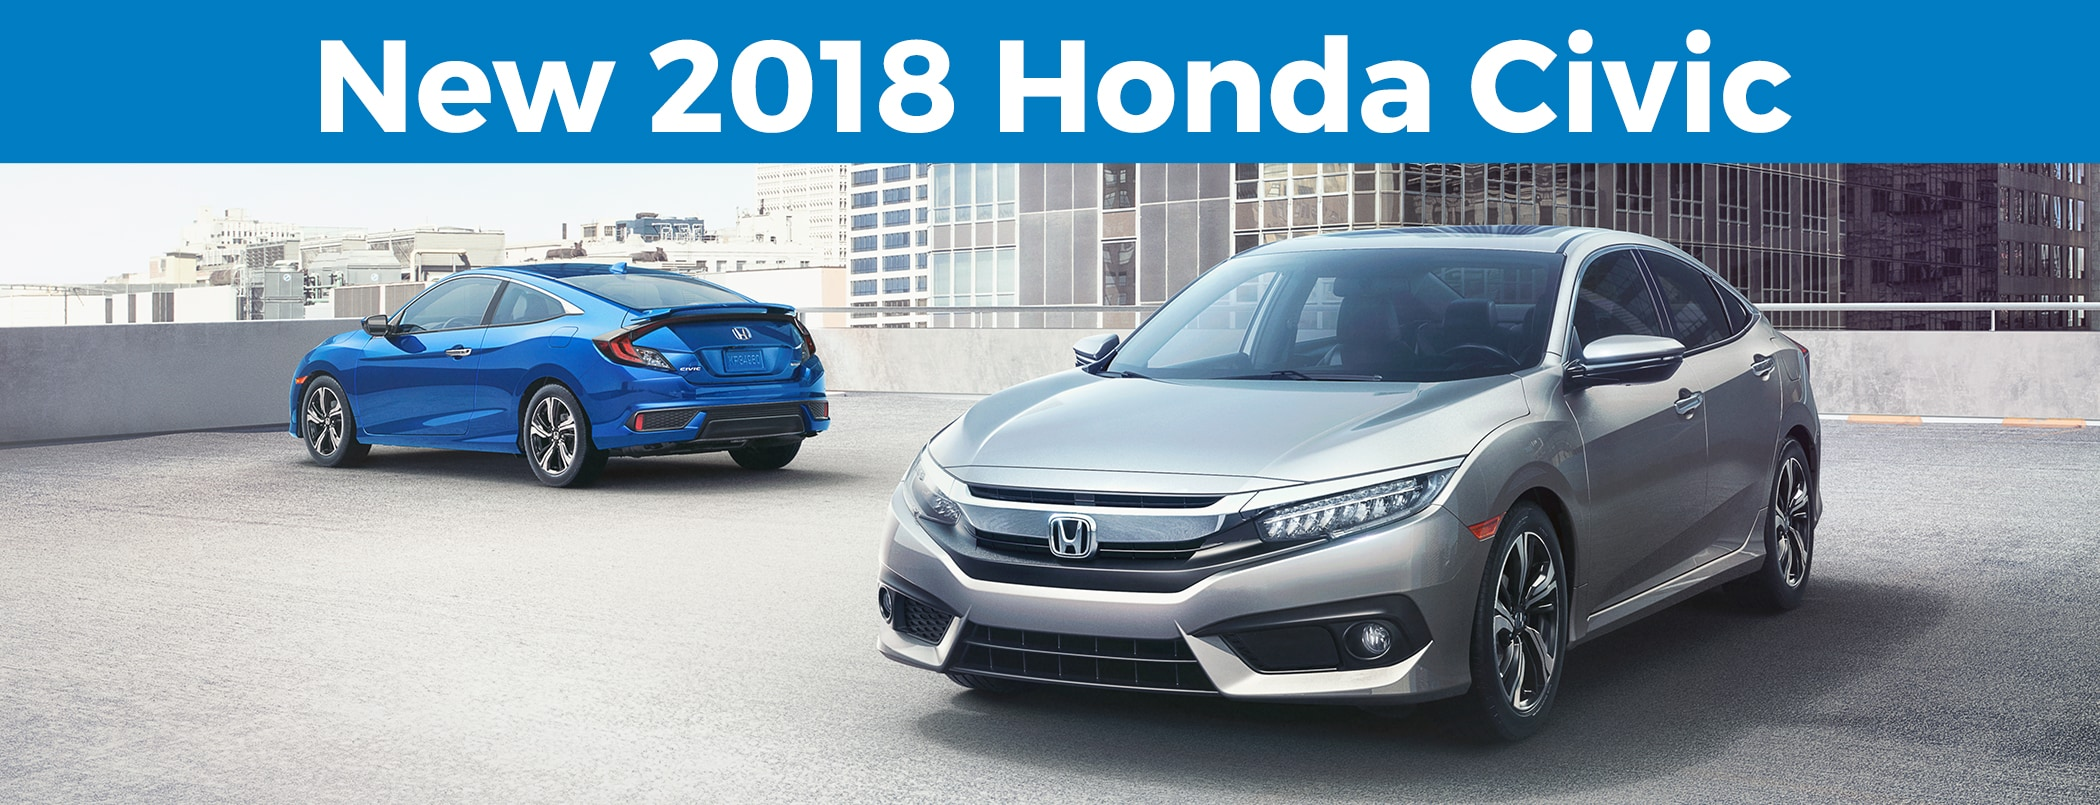 2018 Honda Civic Review Sandy